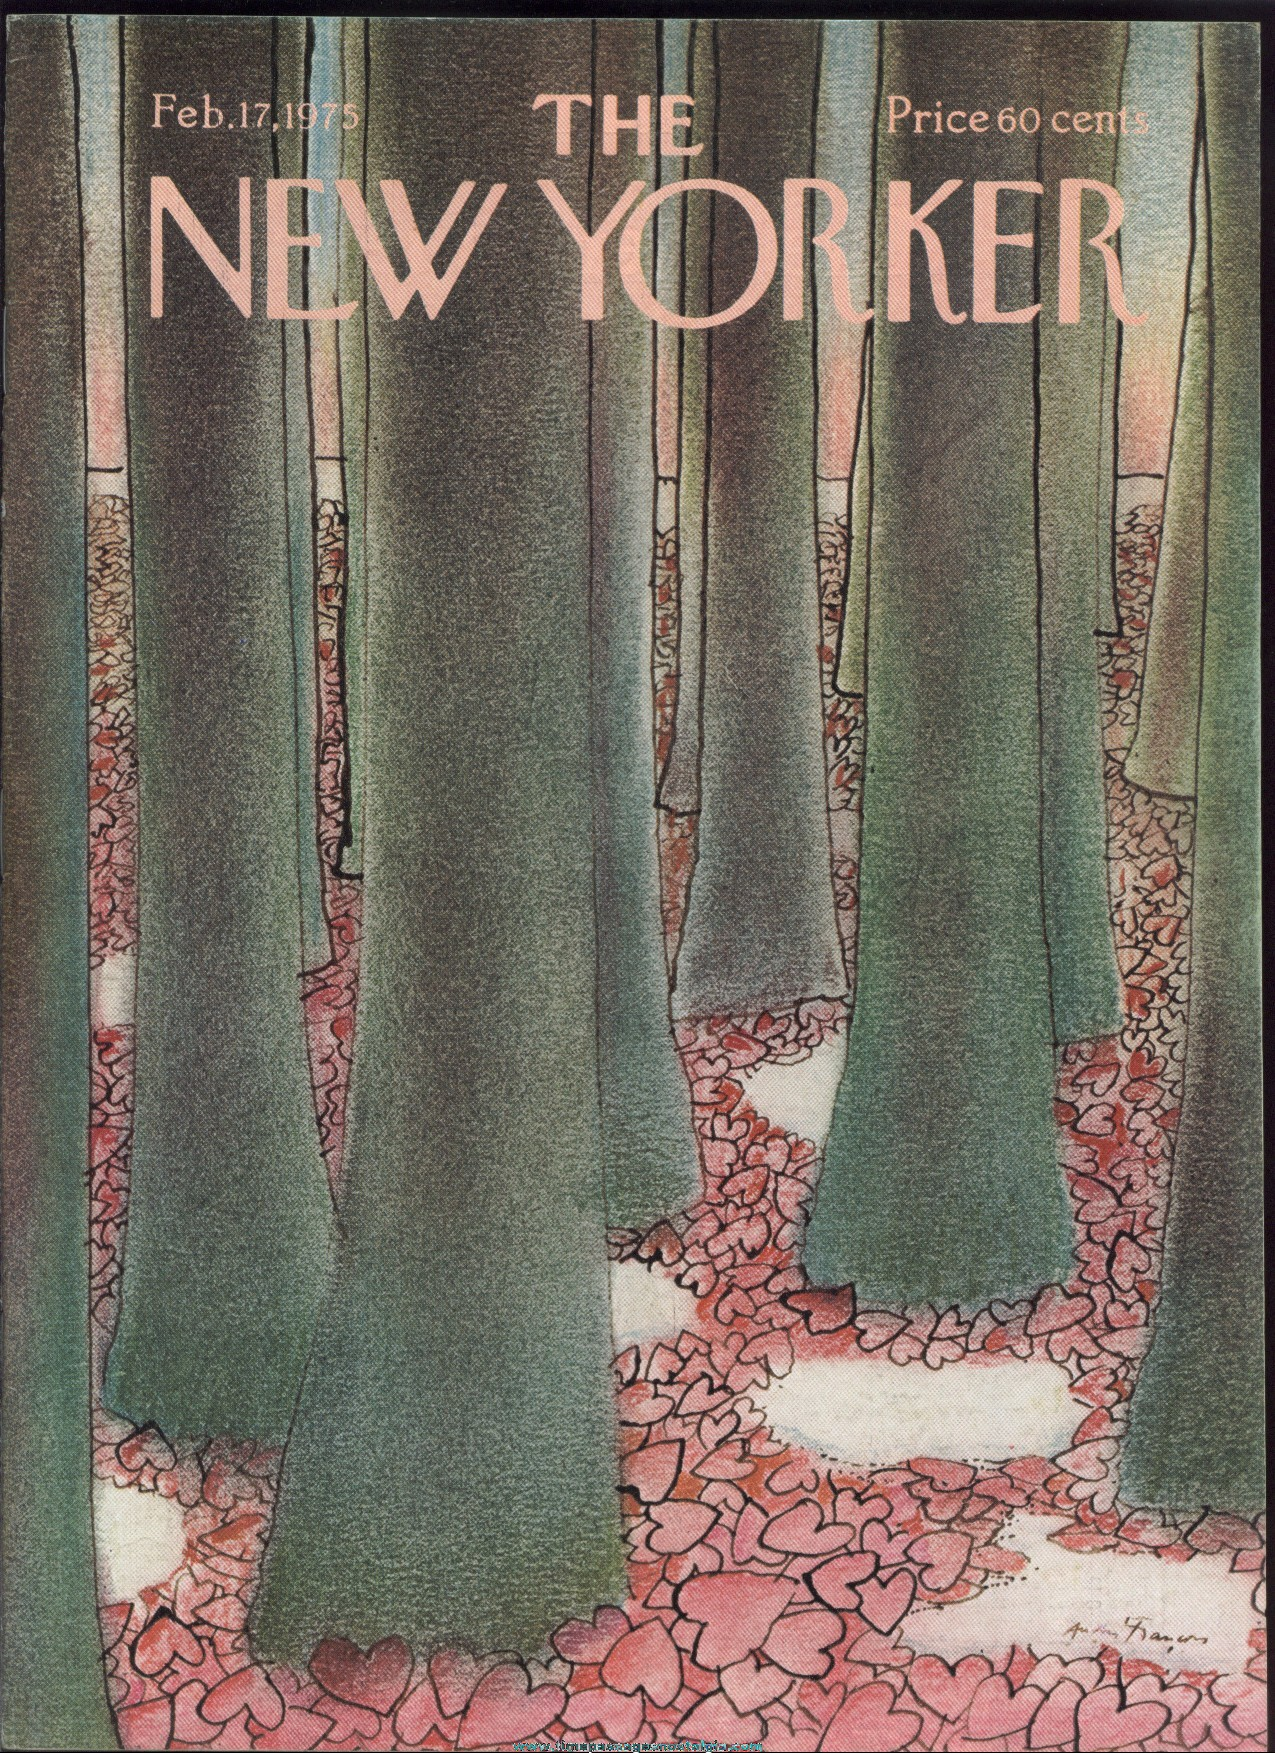 New Yorker Magazine - February 17, 1975 - Cover by Andre Francois